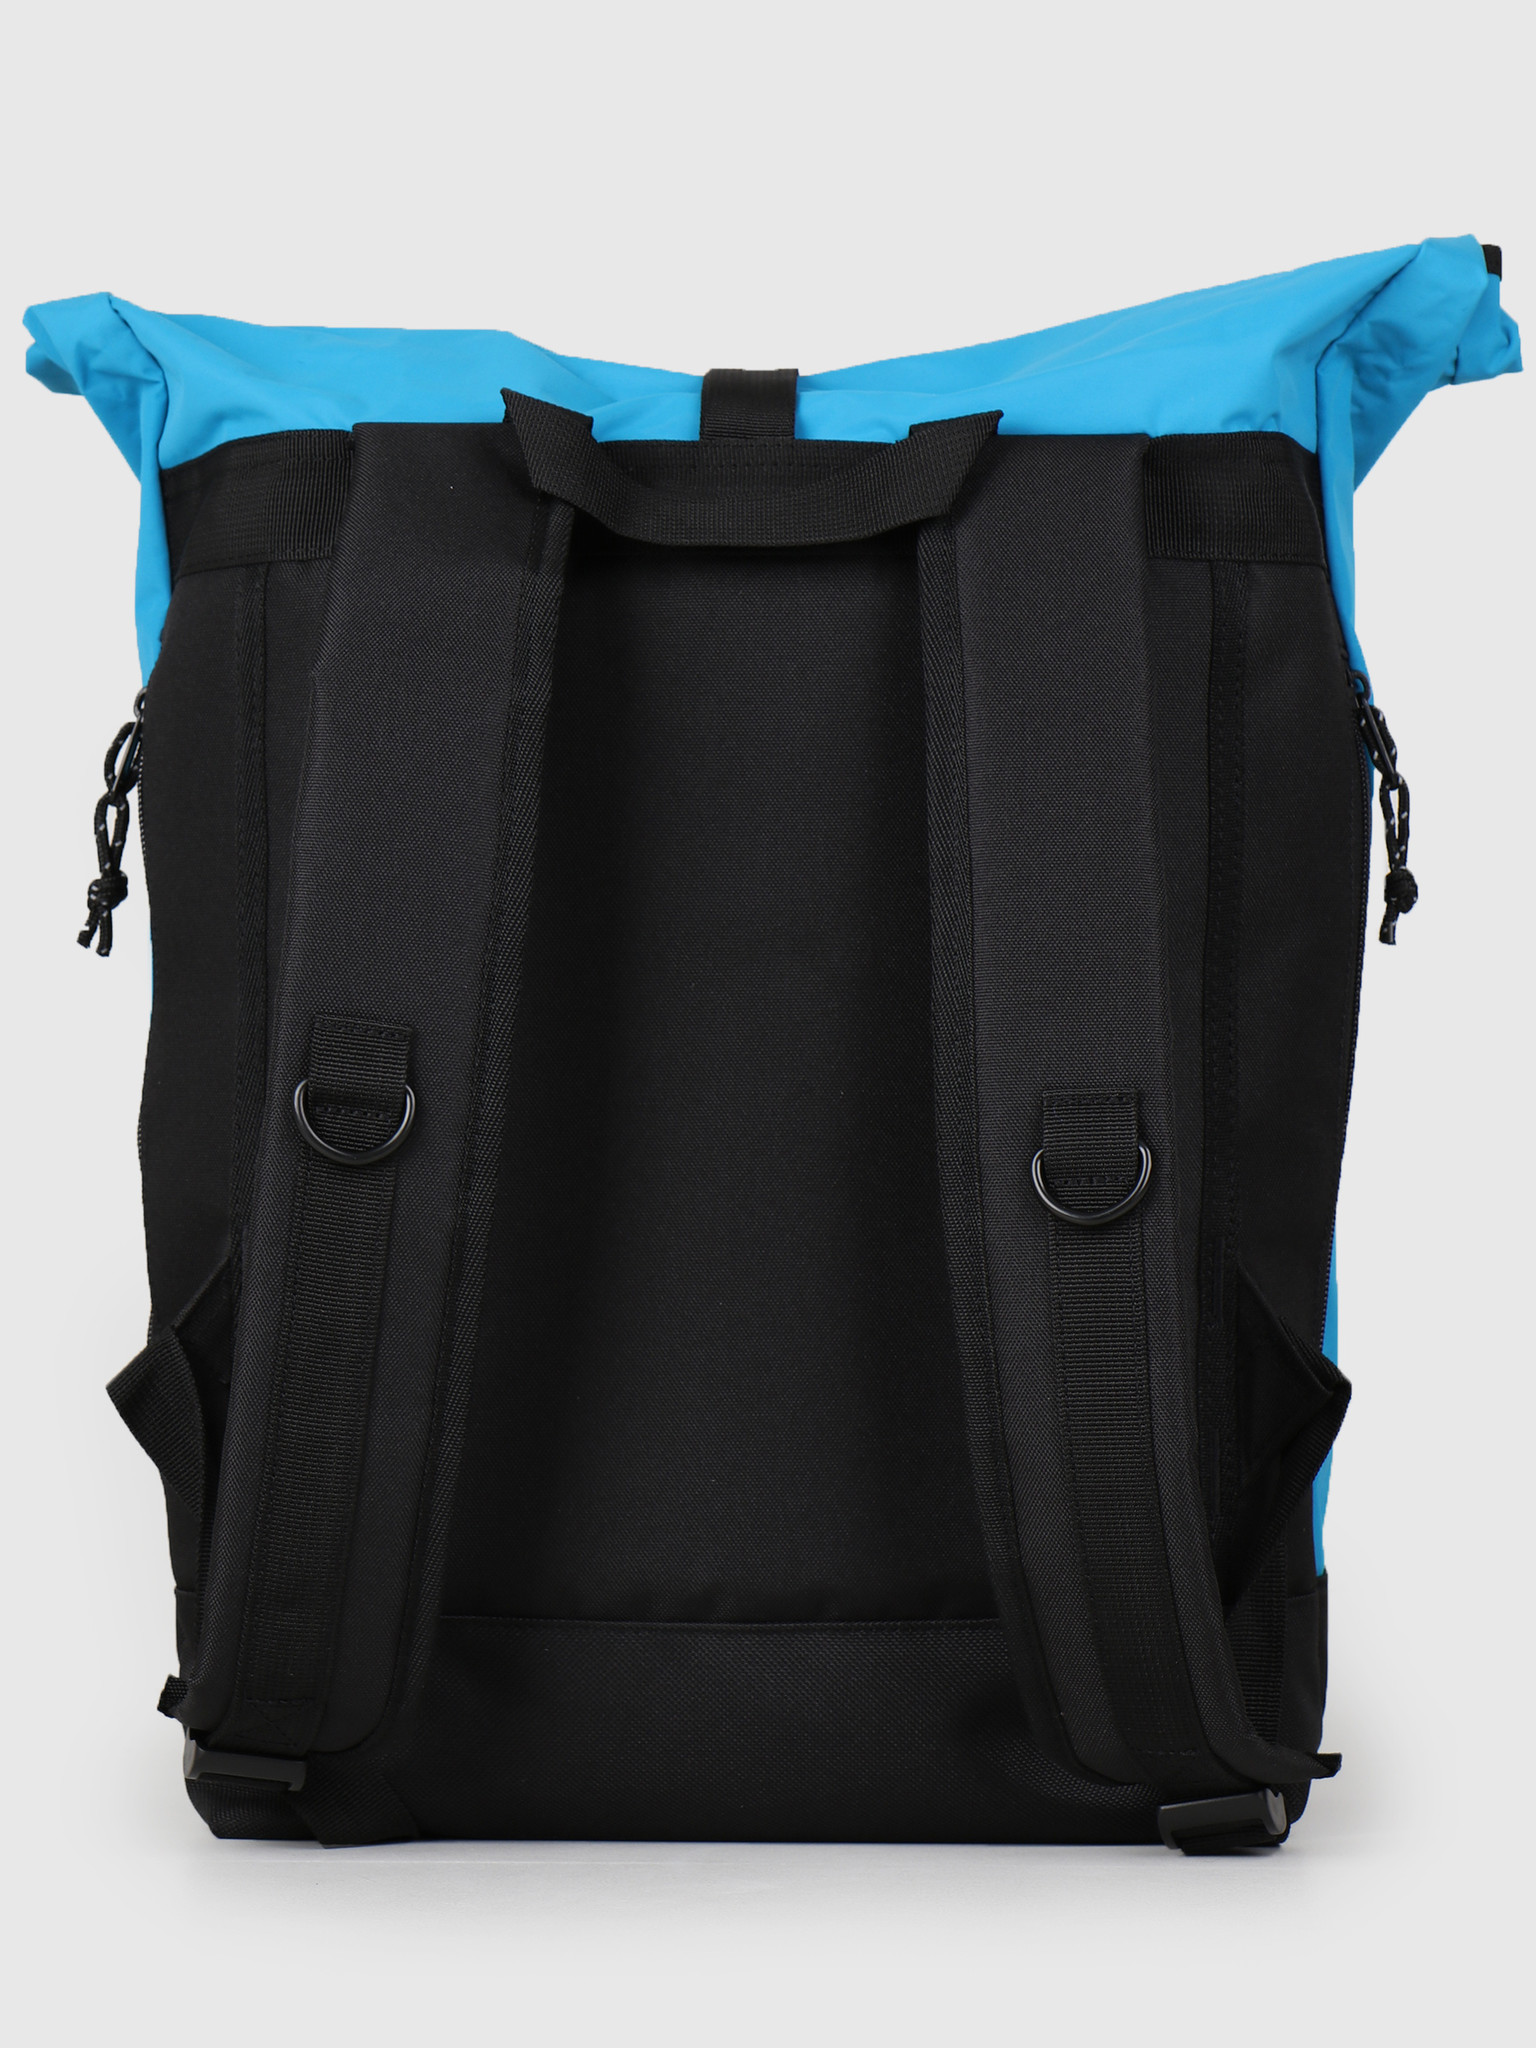 Obey Obey Conditions Rolltop Bag PTL 100010106